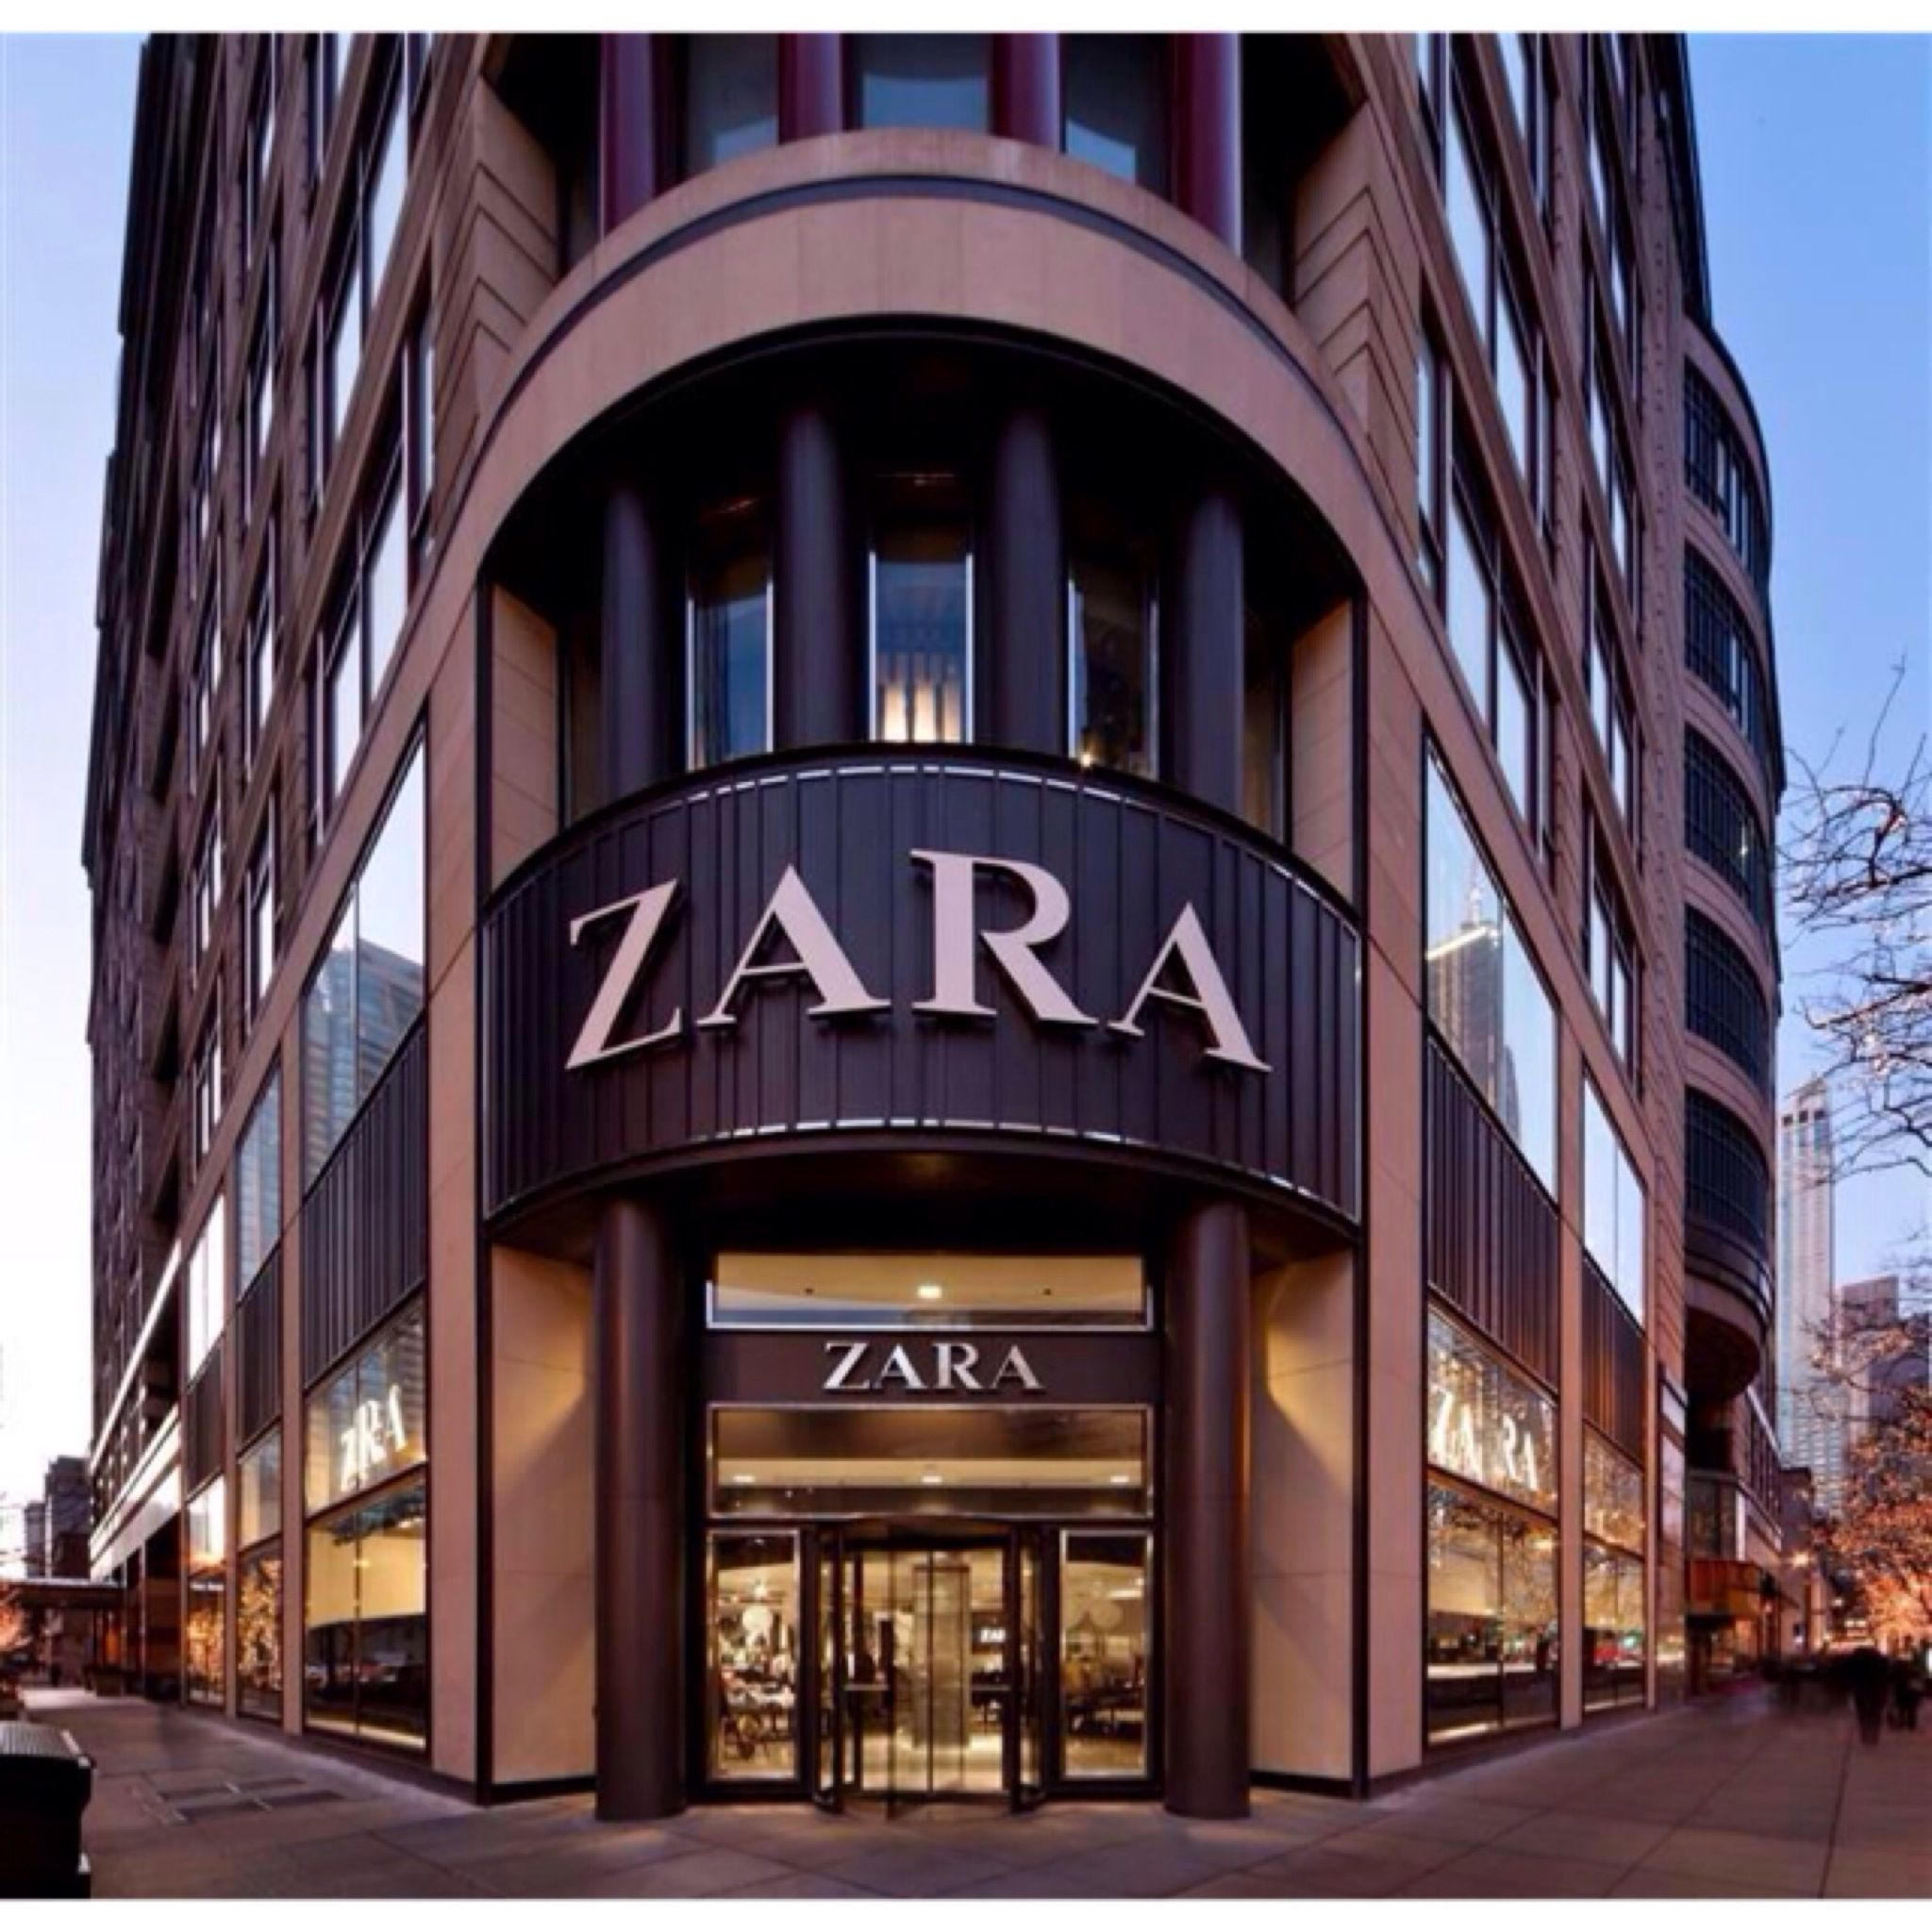 Zara is right on top of my list of favourites. I was really excited when they opened in Durban. The high street brand stocks contemporary items and there's ...